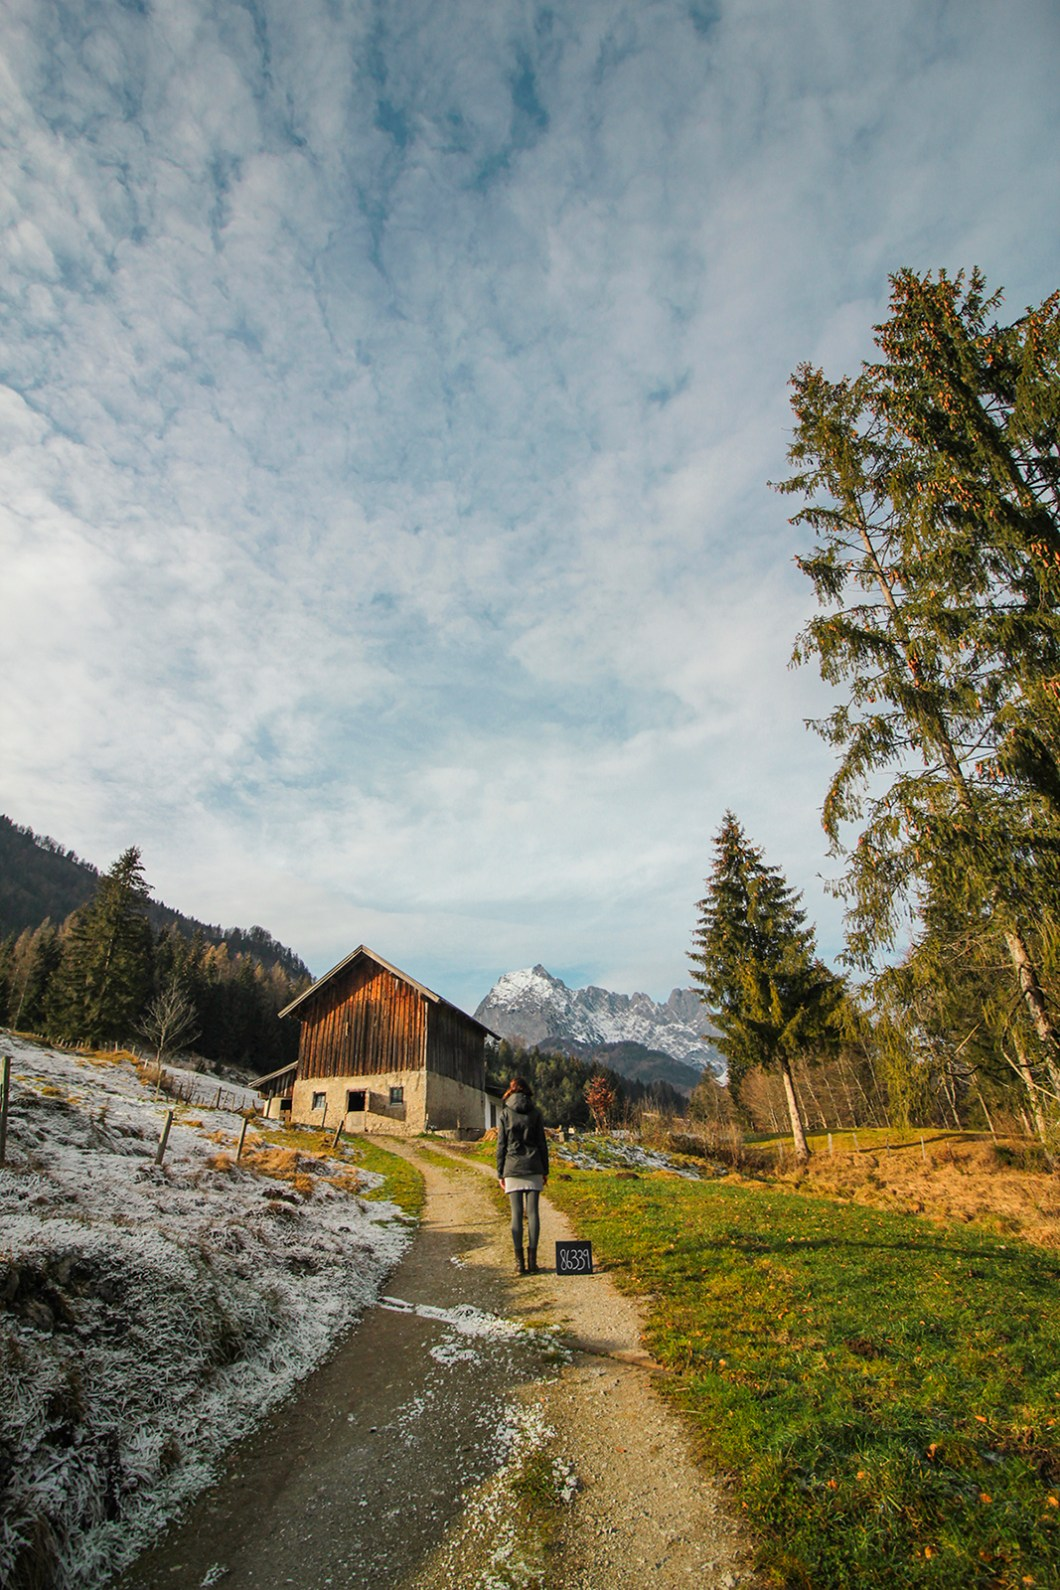 Tirol Austria | How Far From Home